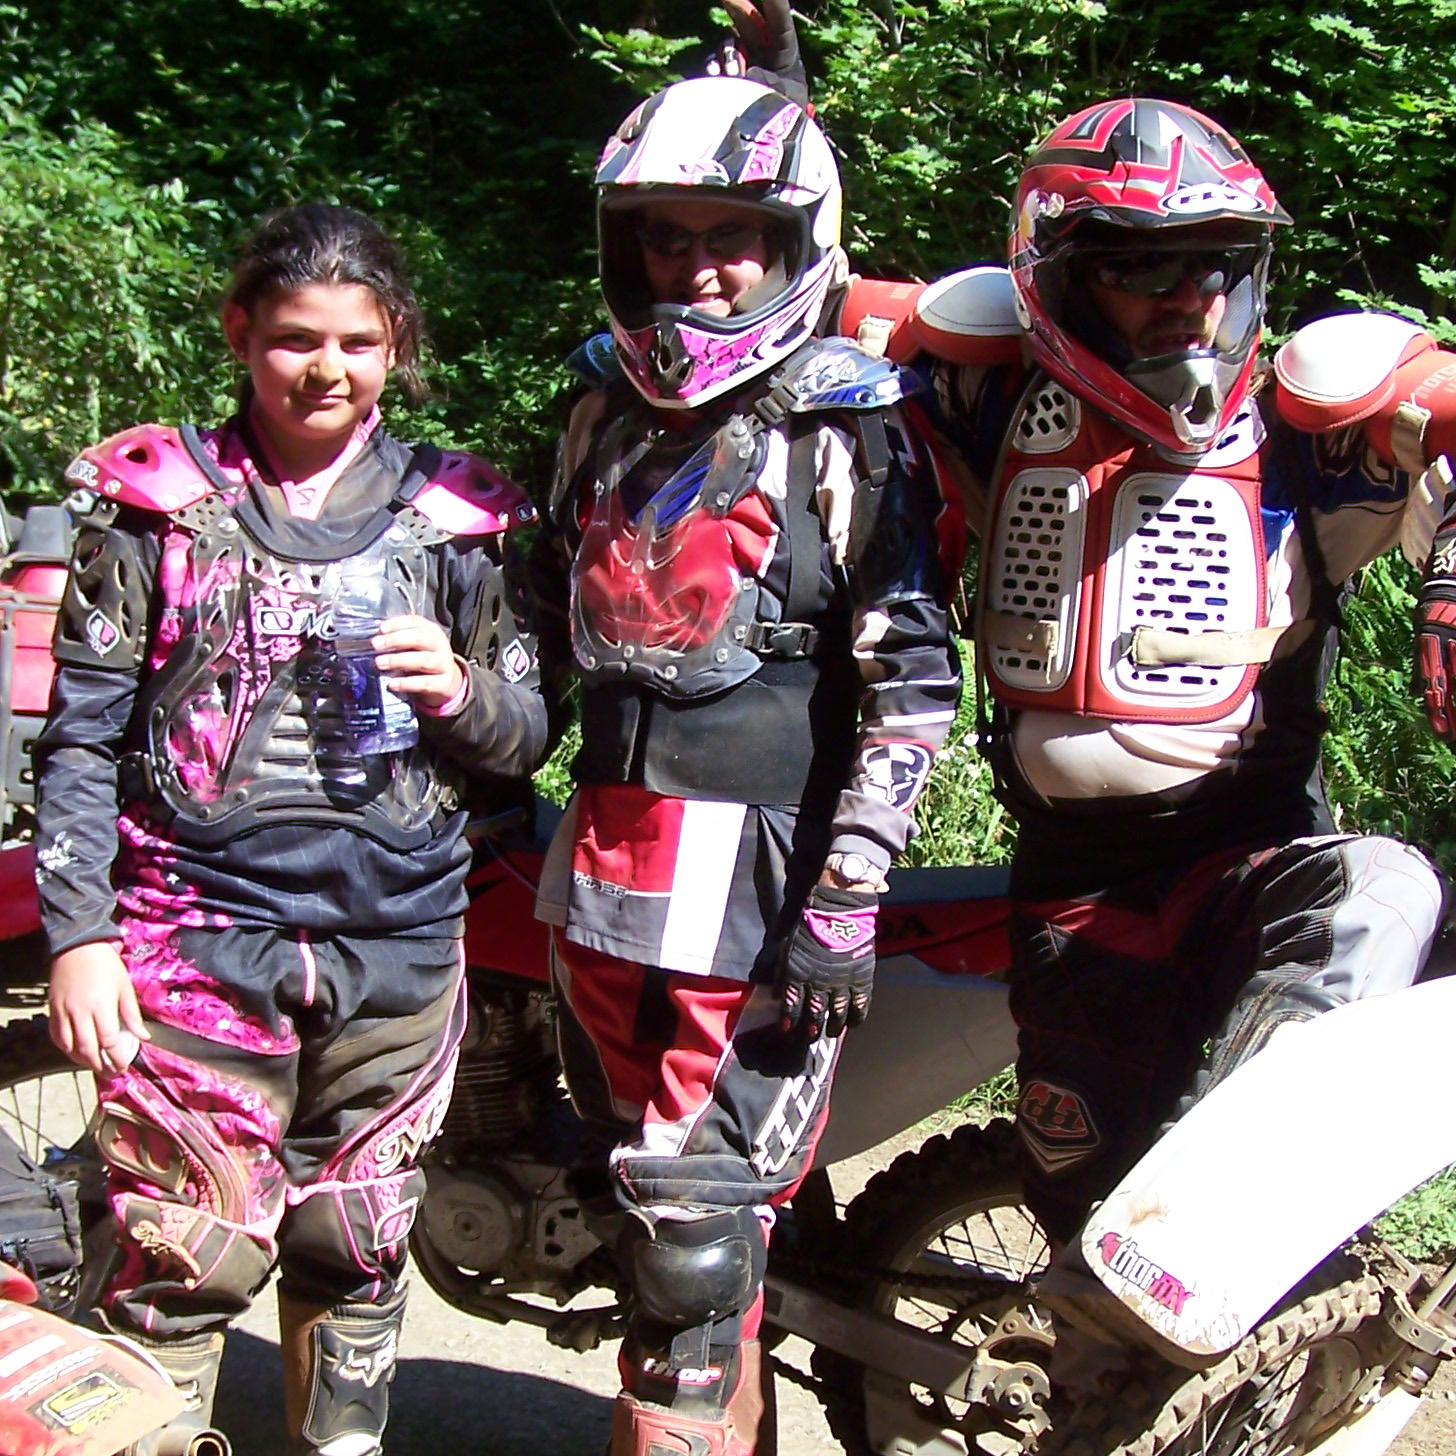 Dirtbikers - photo by DNR